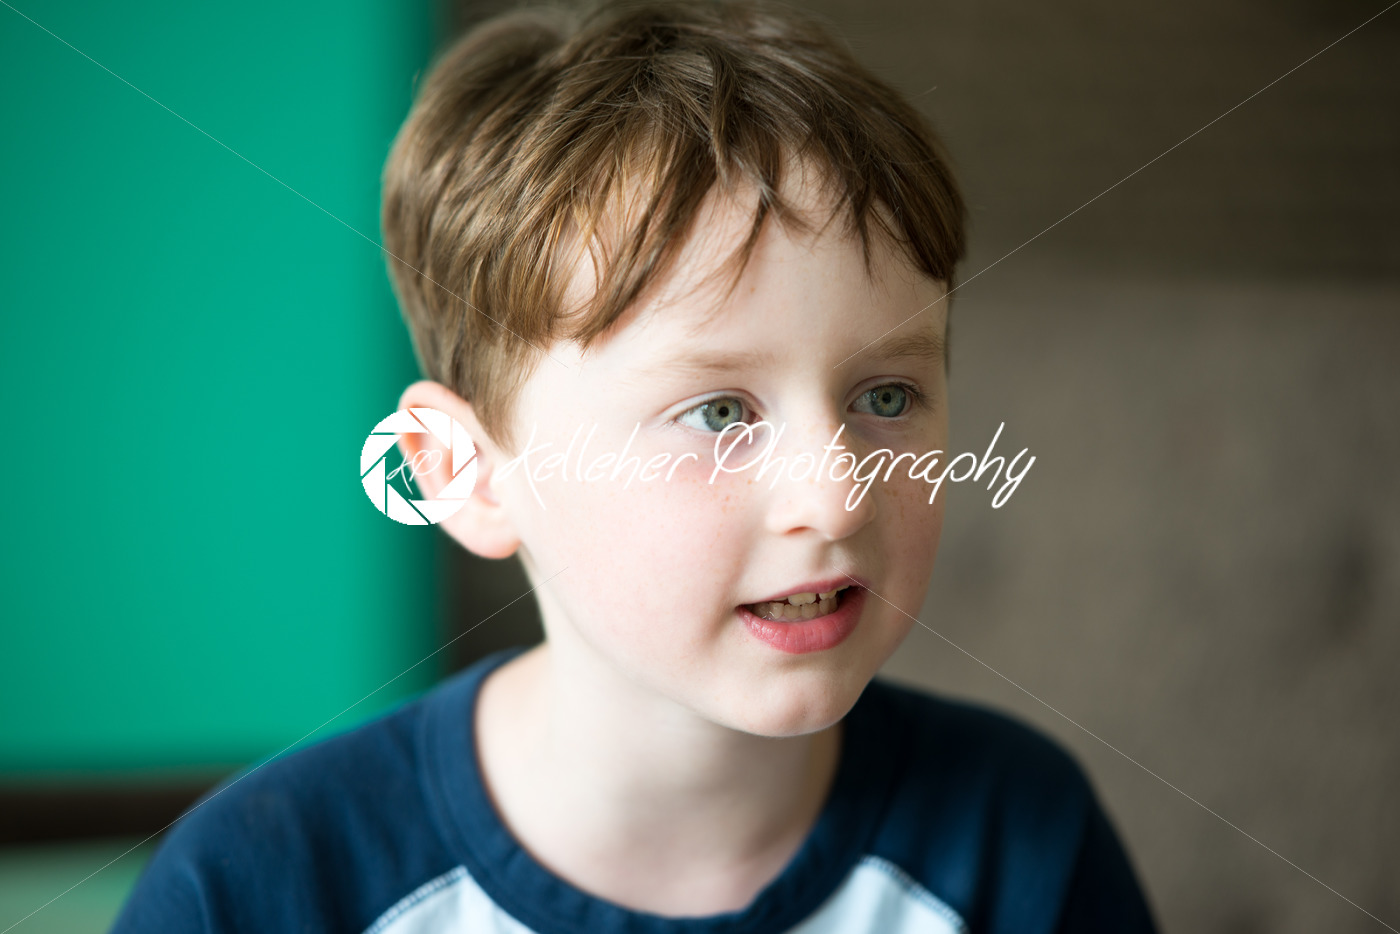 close up portrait of a cute boy with blue eyes kelleher photography store kelleher. Black Bedroom Furniture Sets. Home Design Ideas